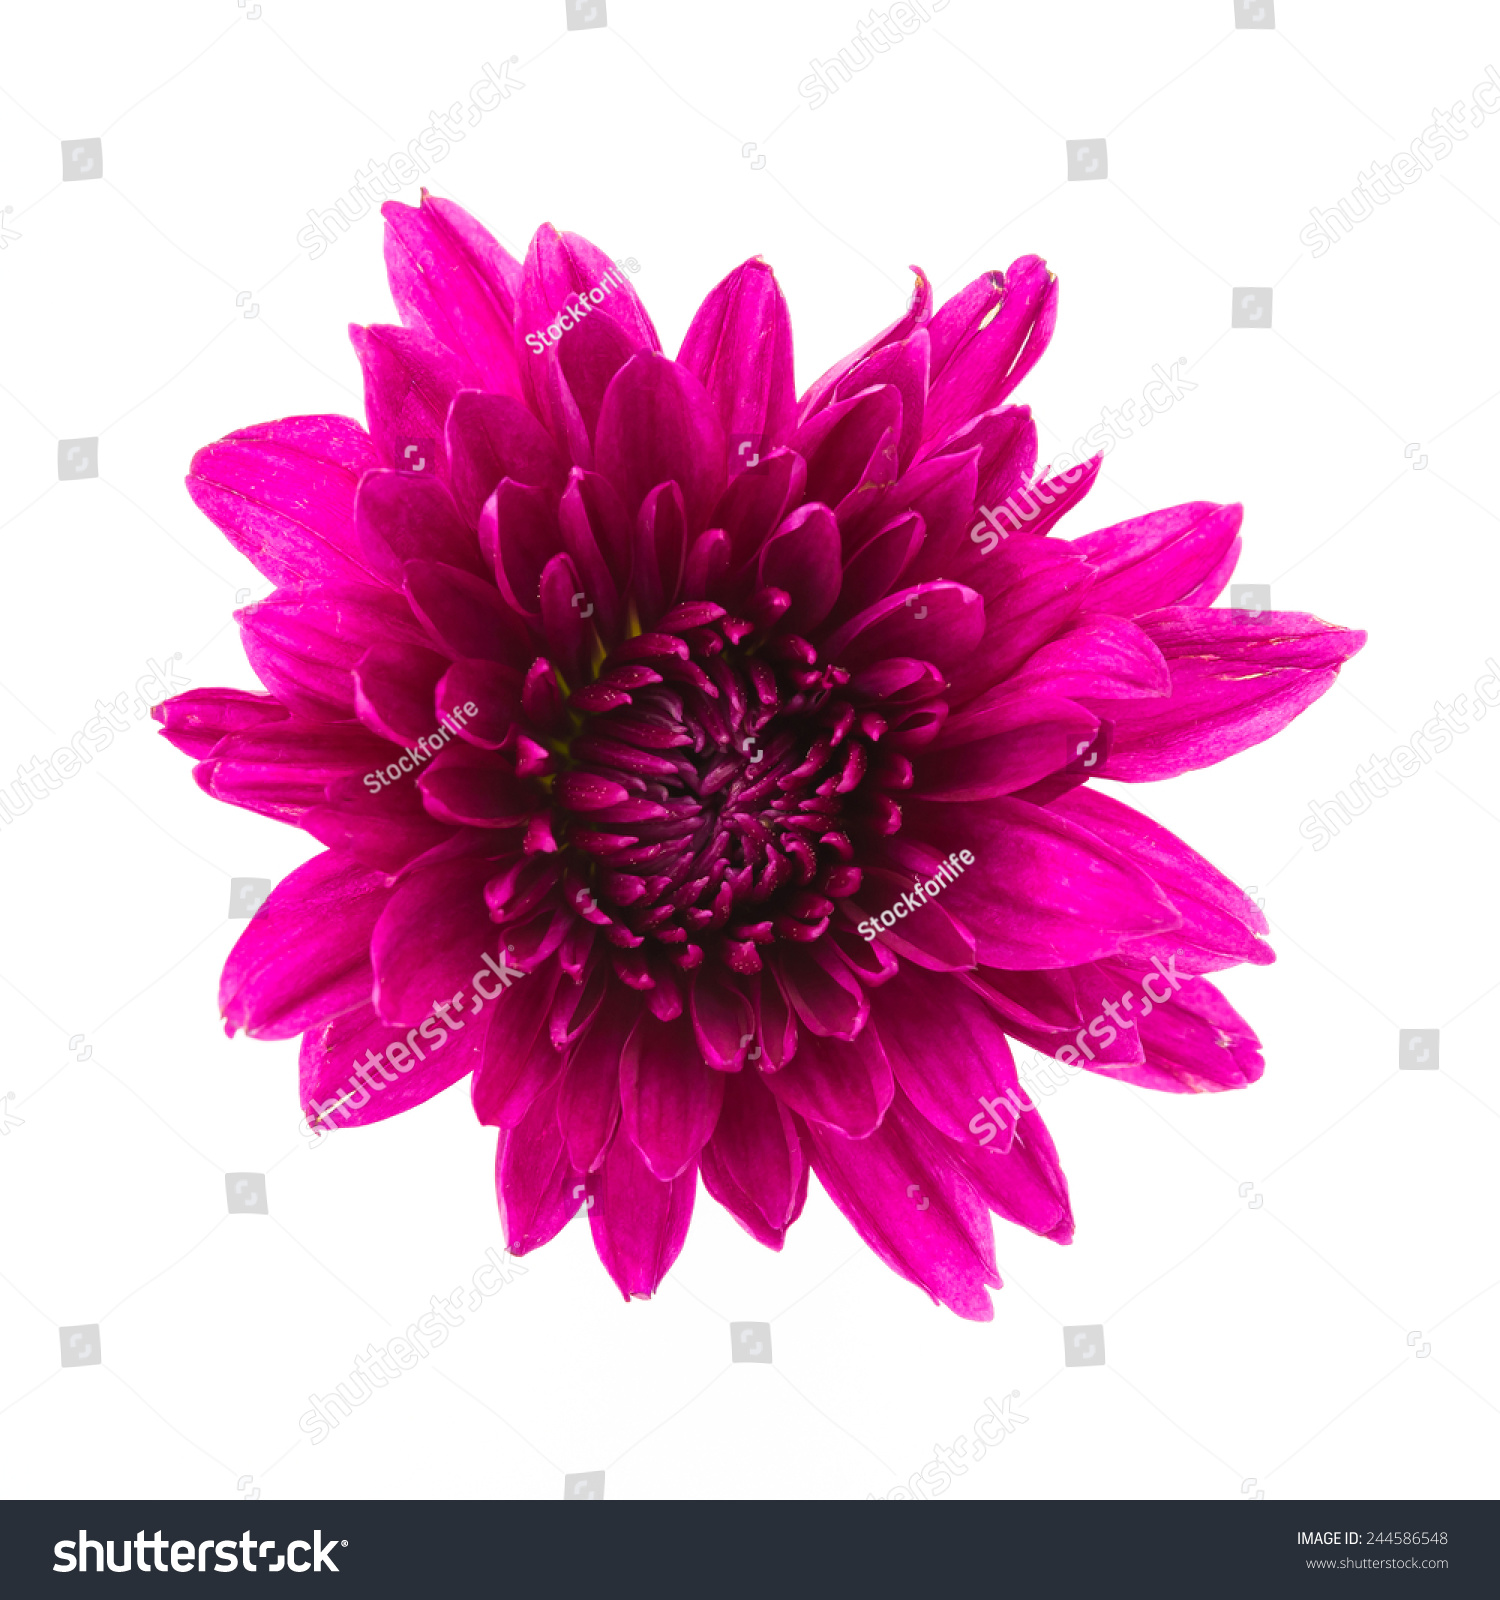 Purple flower isolated on white background | EZ Canvas